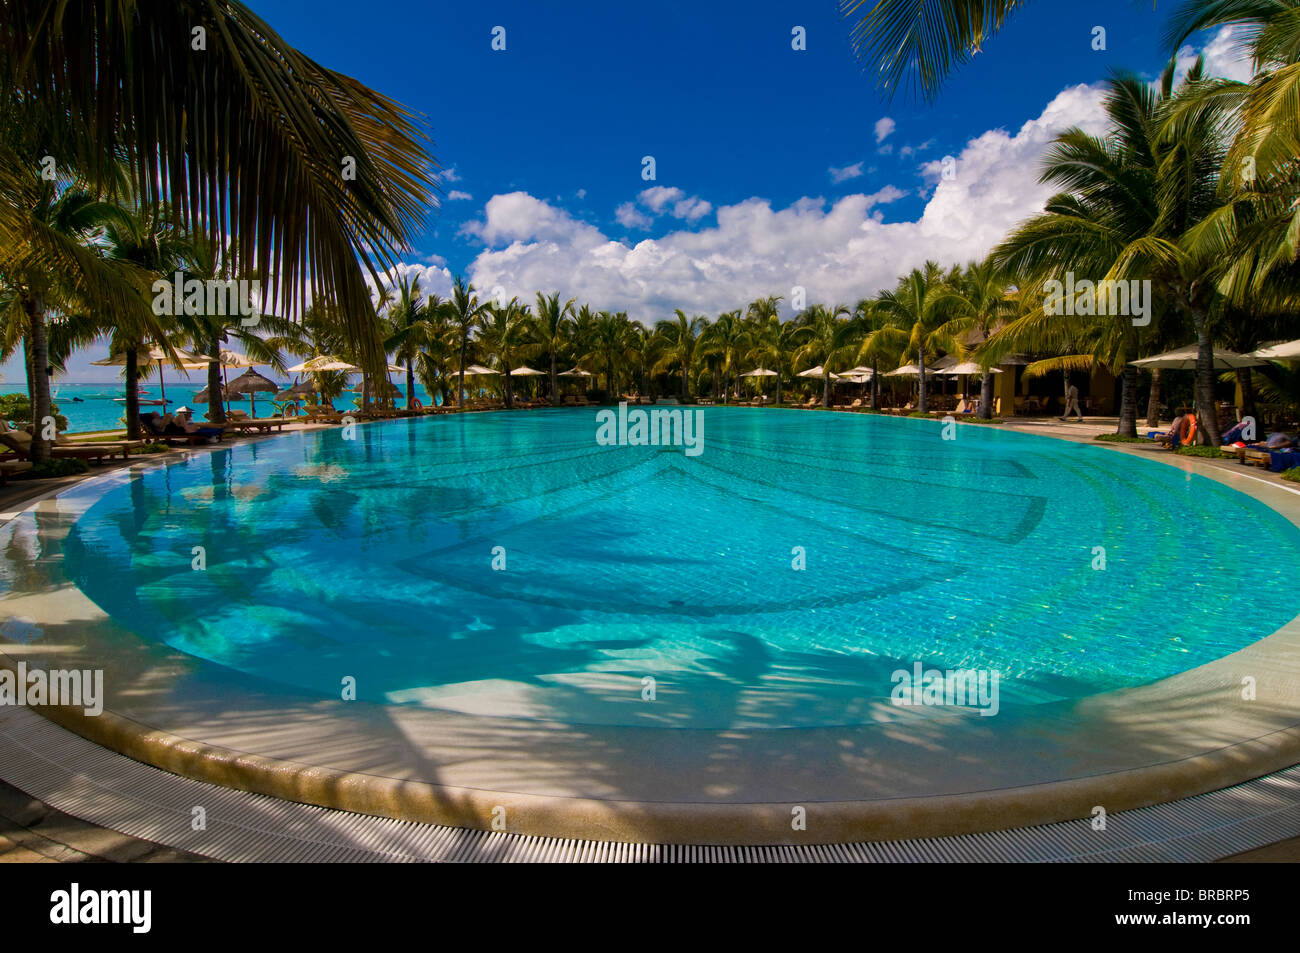 Swimming pool of the Beachcomber Le Paradis five star hotel, Mauritius, Indian Ocean Stock Photo